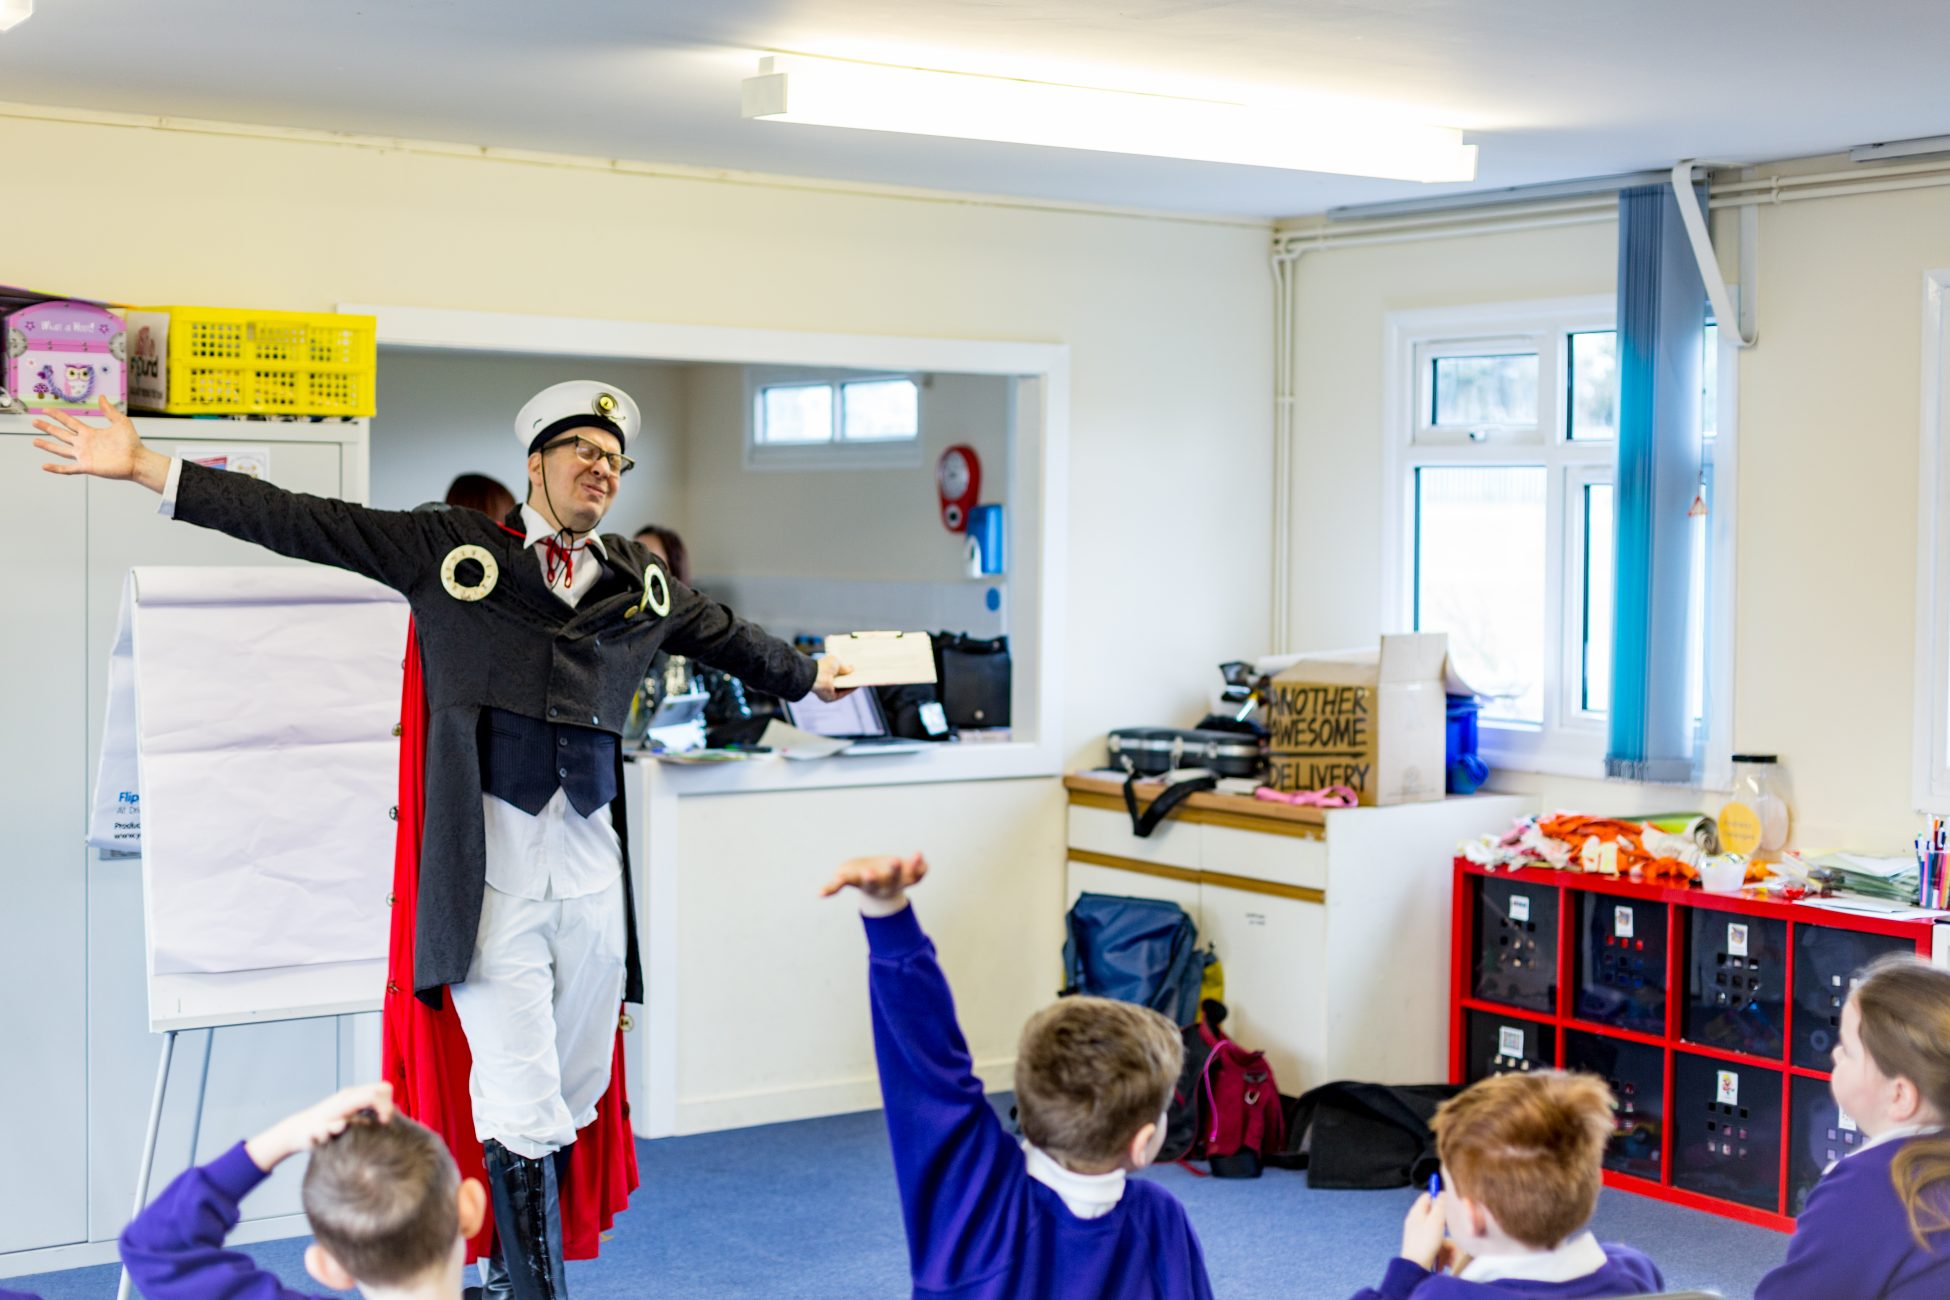 Photo of Steampunk Bob standing in front of a group of school children with his arms stretched out to the sides. One of the children has their hand raised.